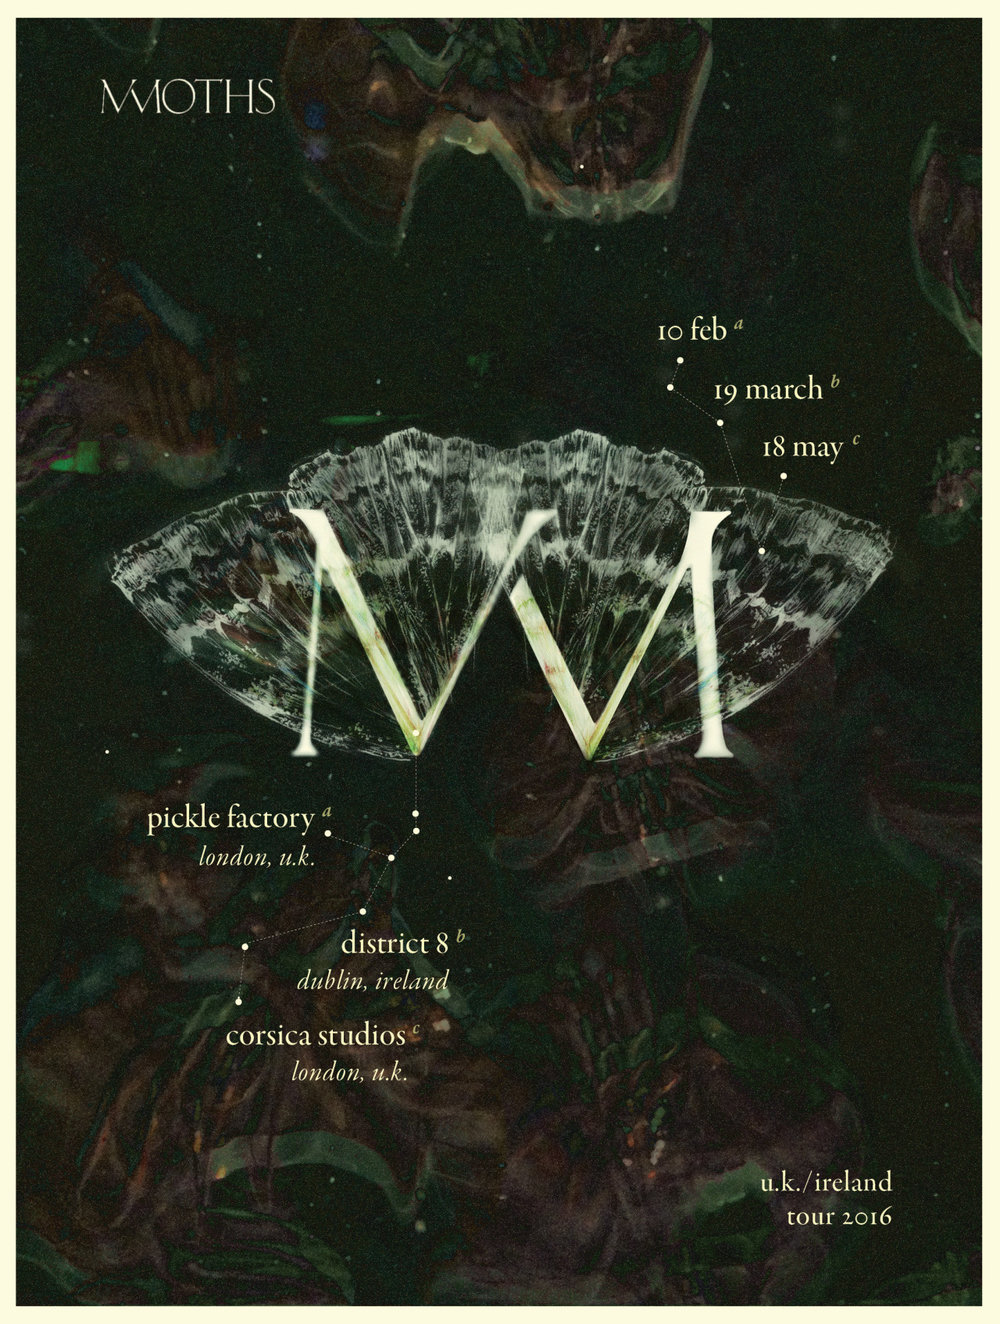 MMOTHS gig poster reflecting the nocturnal sound of their 2016 album Luneworks.